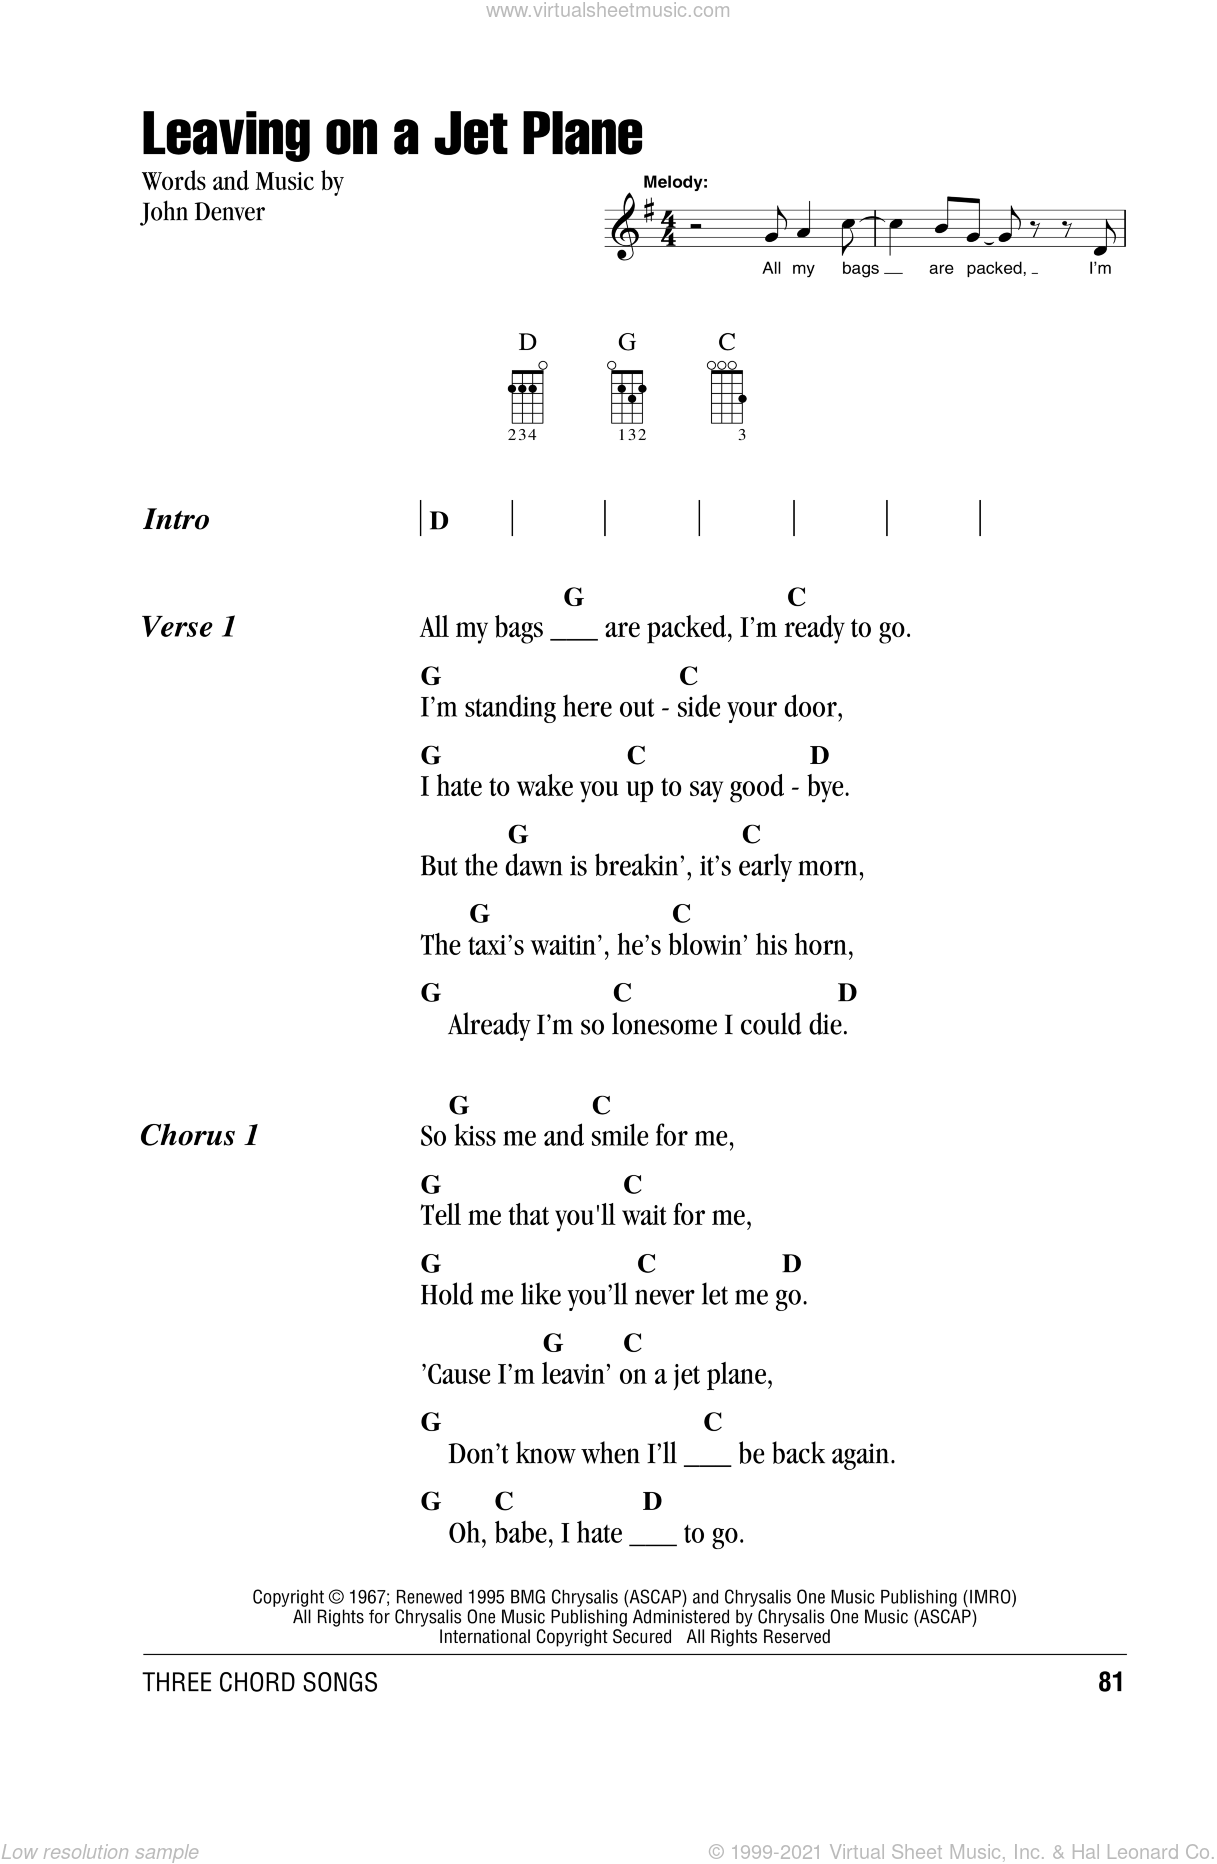 Leaving On A Jet Plane sheet music for ukulele (chords) by John Denver, intermediate skill level